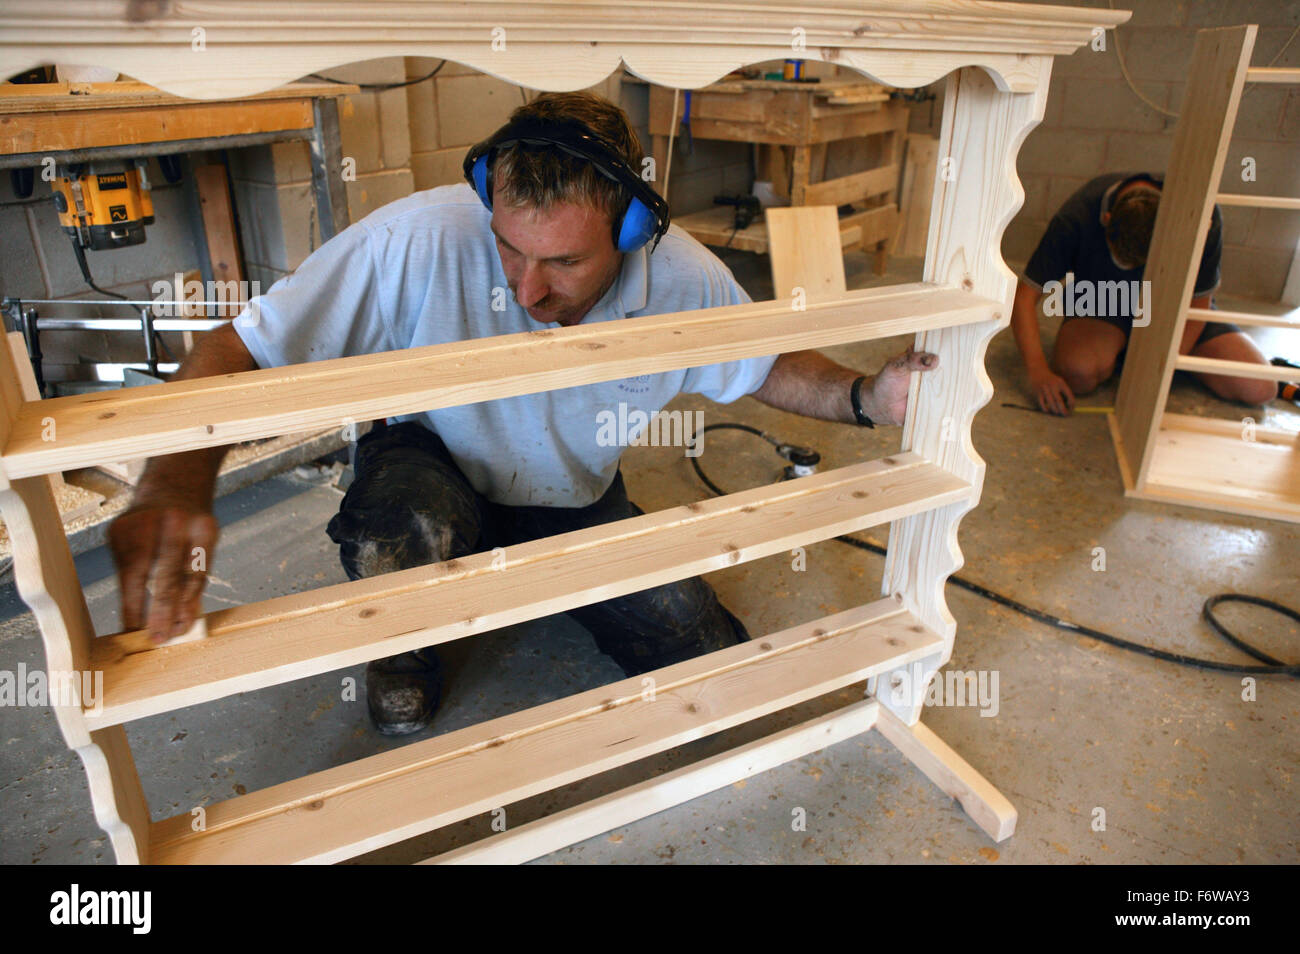 Man With Learning Disabilities Making Pine Furniture Stock